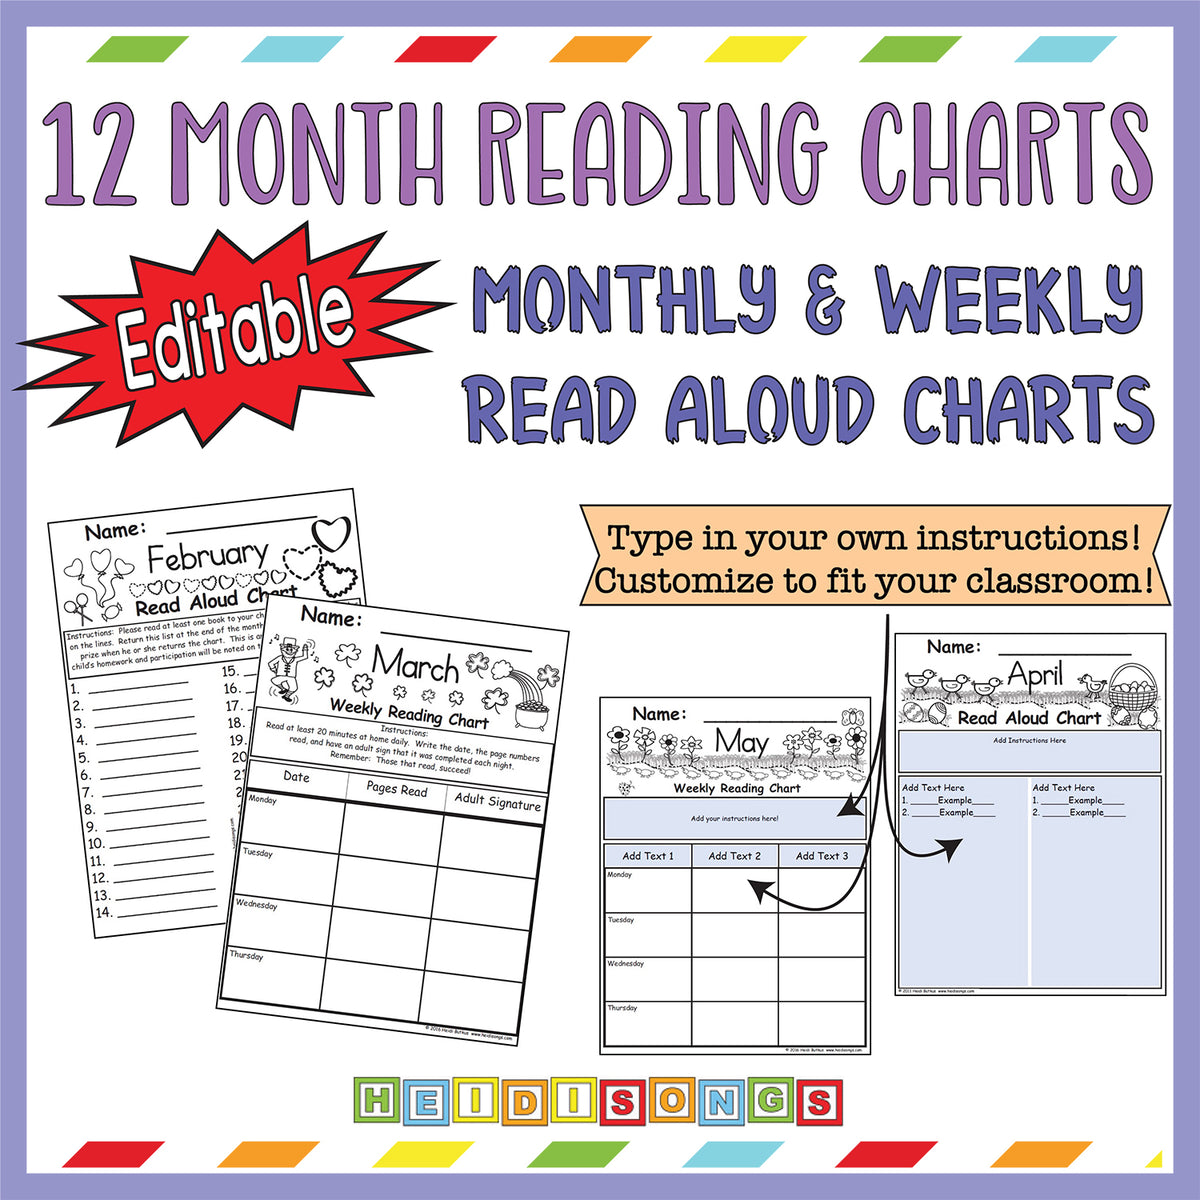 12 Monthly & Weekly Read Aloud Charts (Editable)